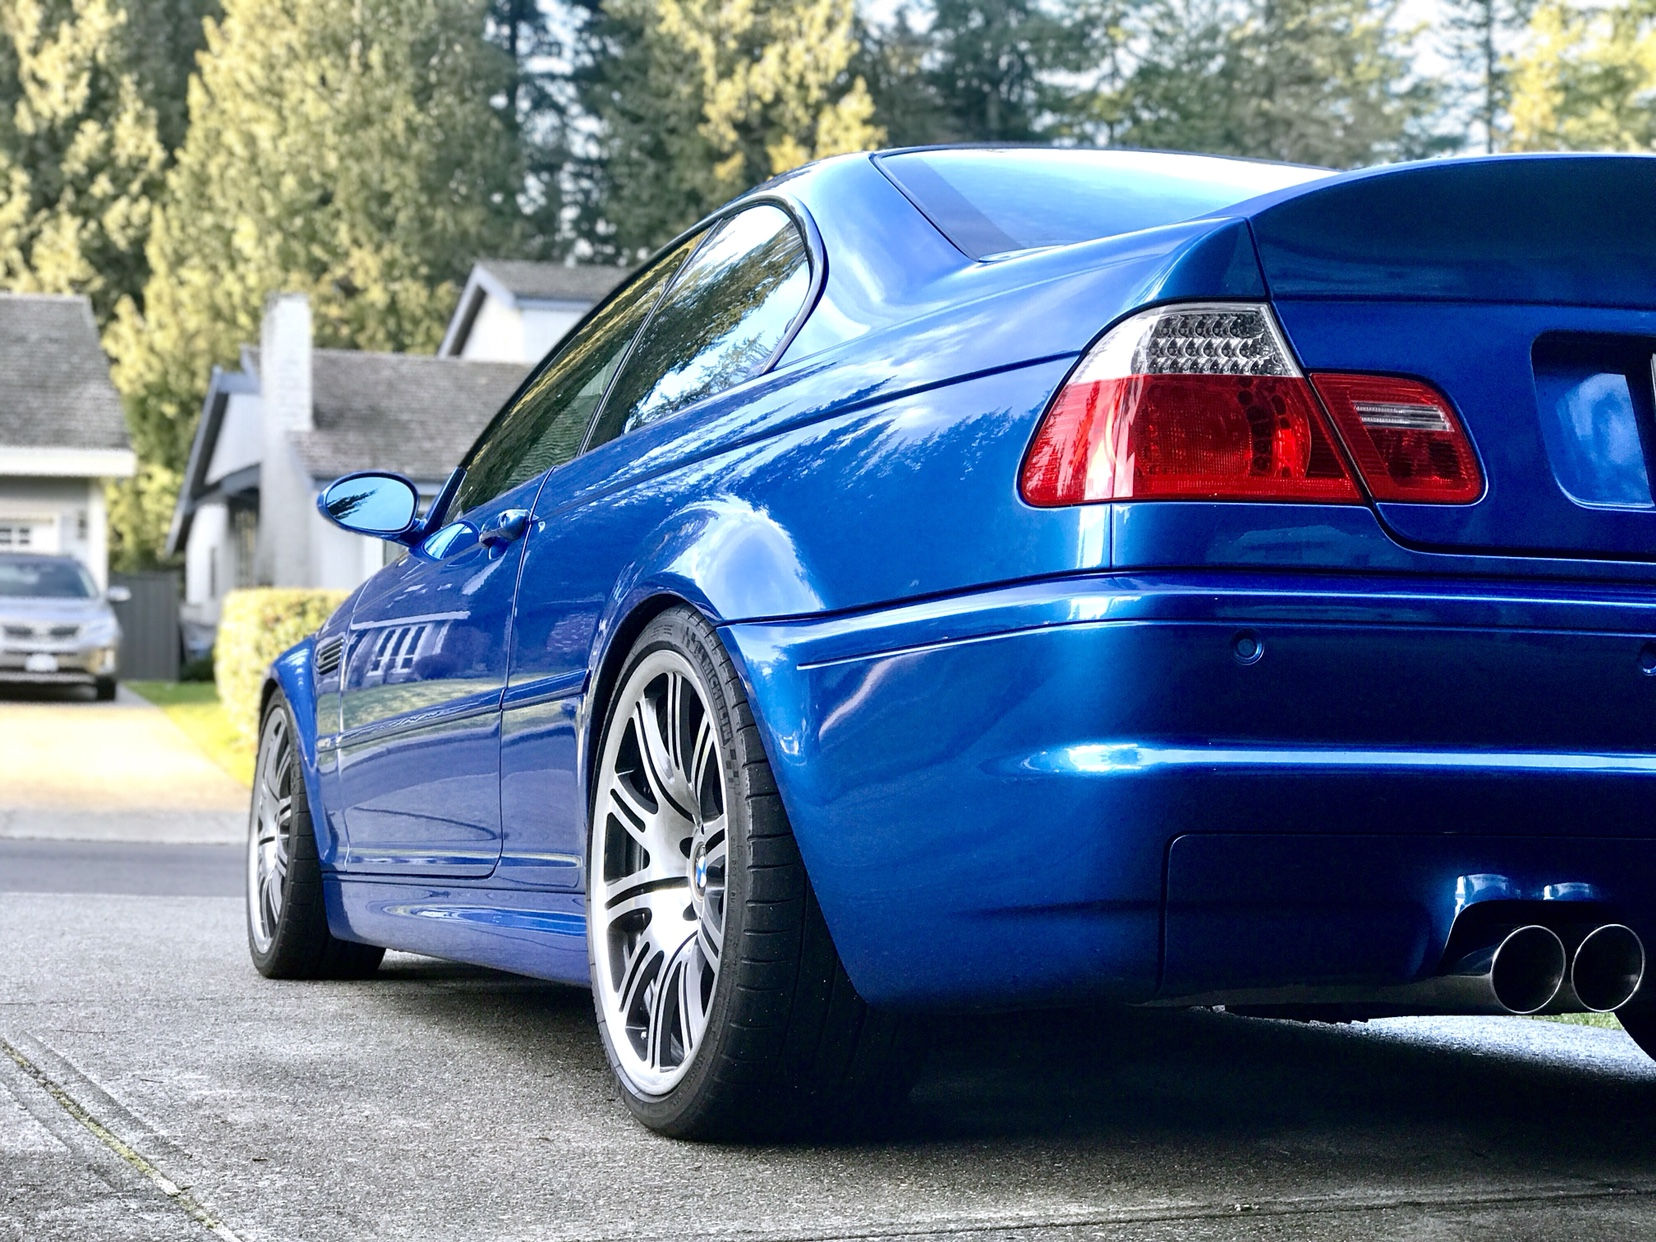 Post Pics of your E46 [Archive] - Page 28 - Bimmerfest - BMW